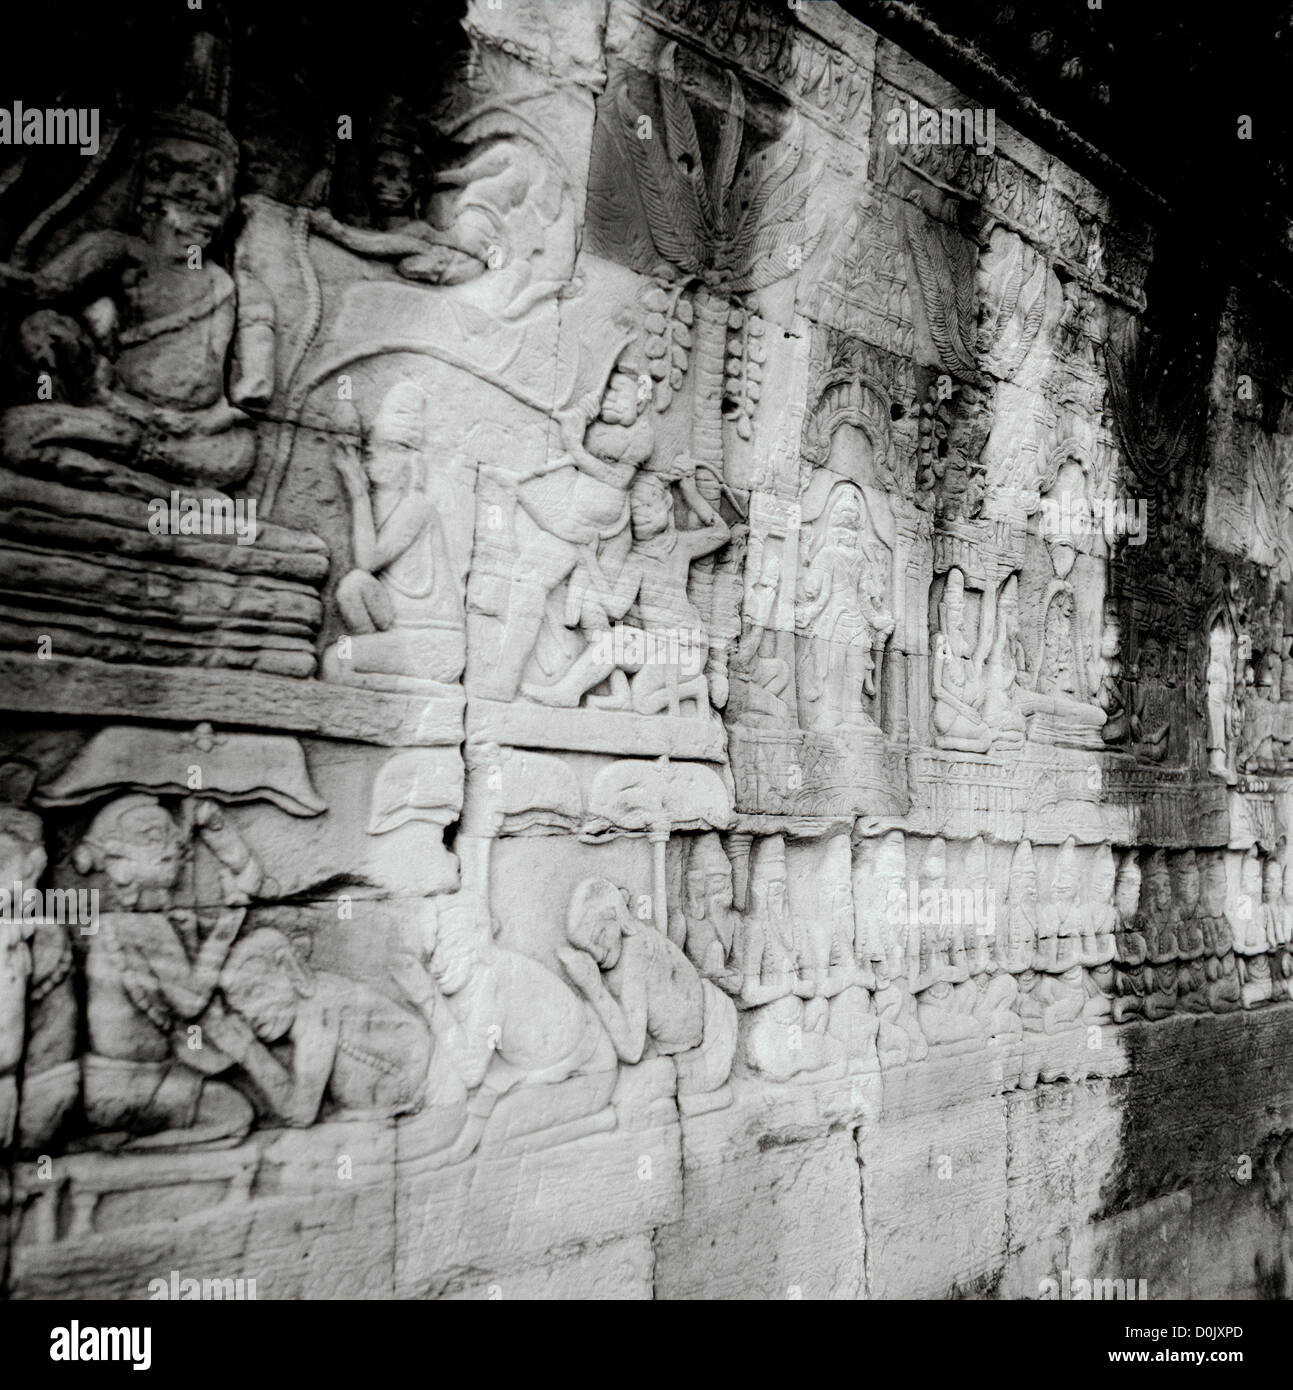 Bas relief Khmer carvings at the Bayon Temple of Angkor Thom at the Temples of Angkor in Cambodia in Southeast Asia. - Stock Image